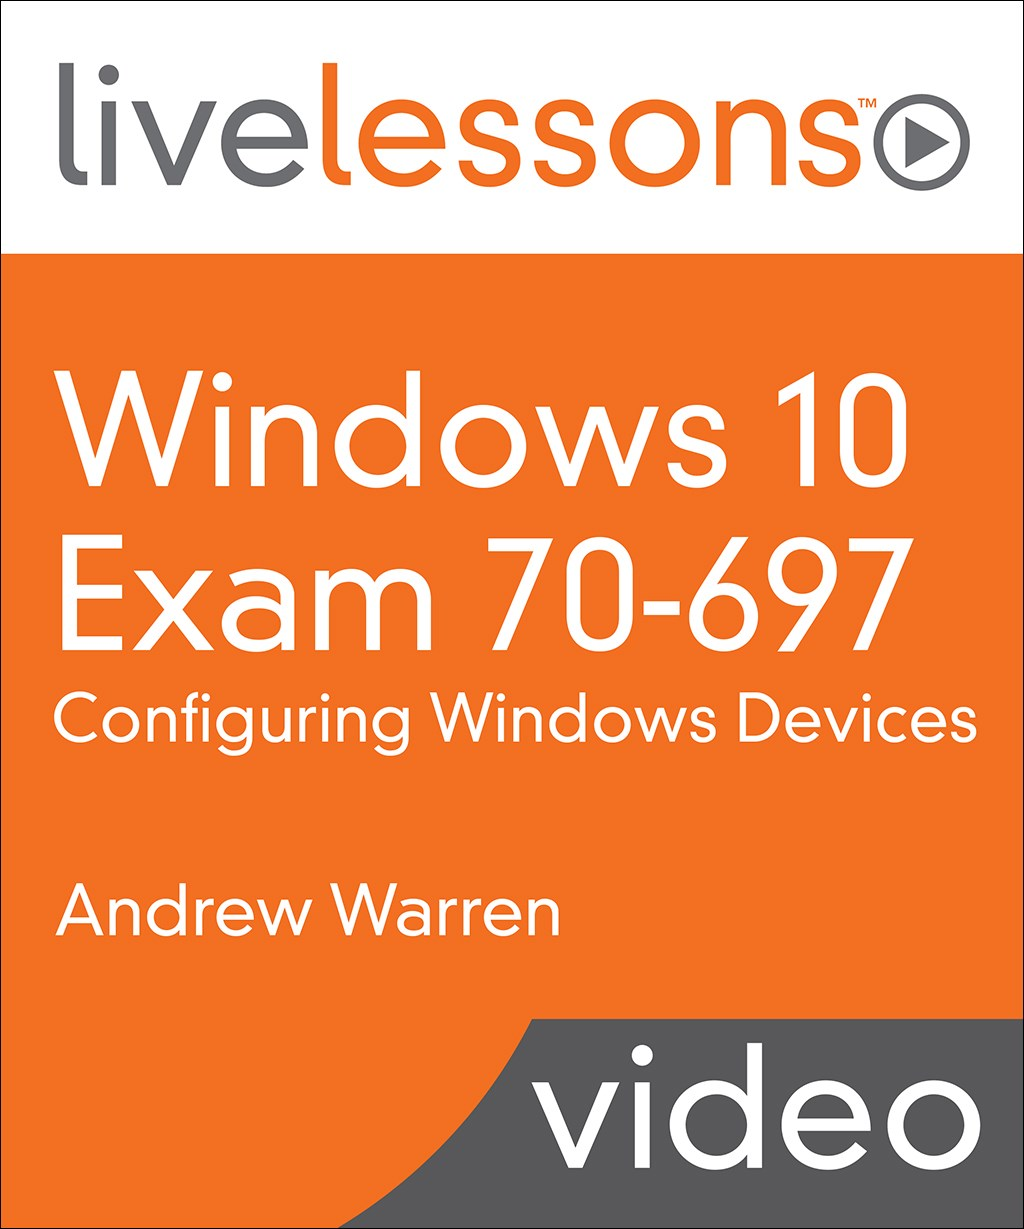 Windows 10 Exam 70-697: Configuring Windows Devices LiveLessons (Video Training)